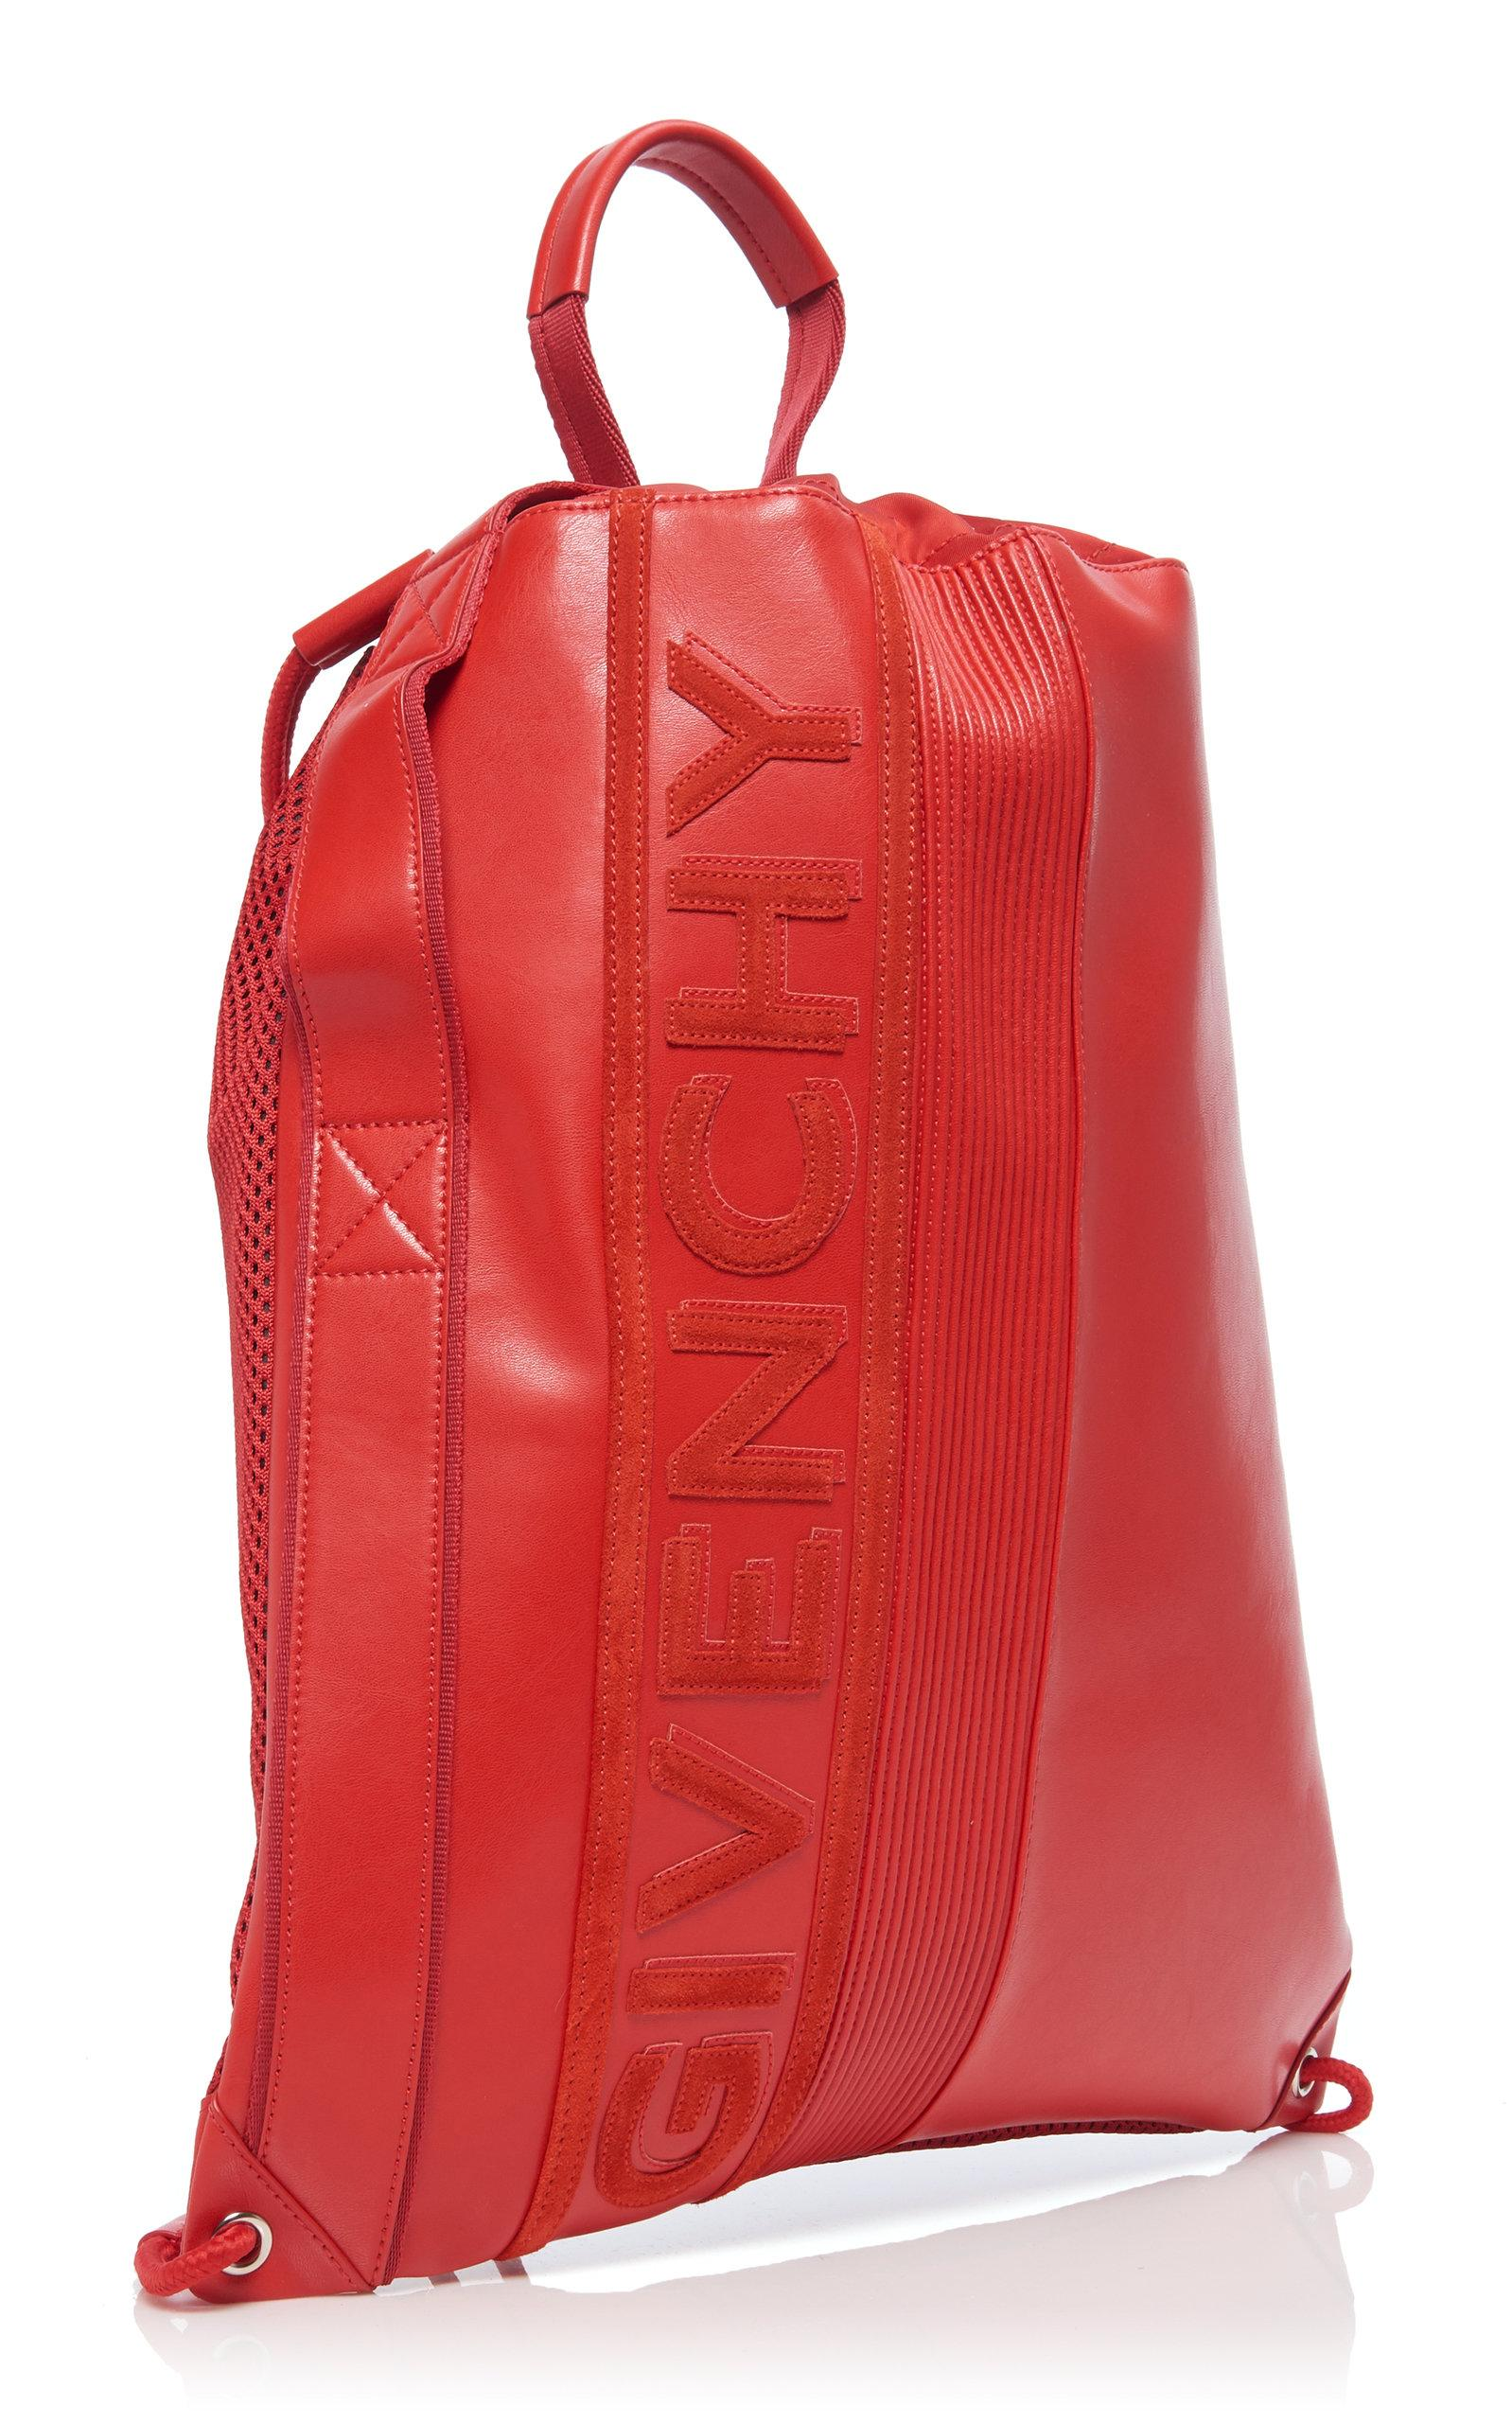 fb2e723d1163f3 Givenchy - Red Mc3 Leather Drawstring Backpack - Lyst. View fullscreen